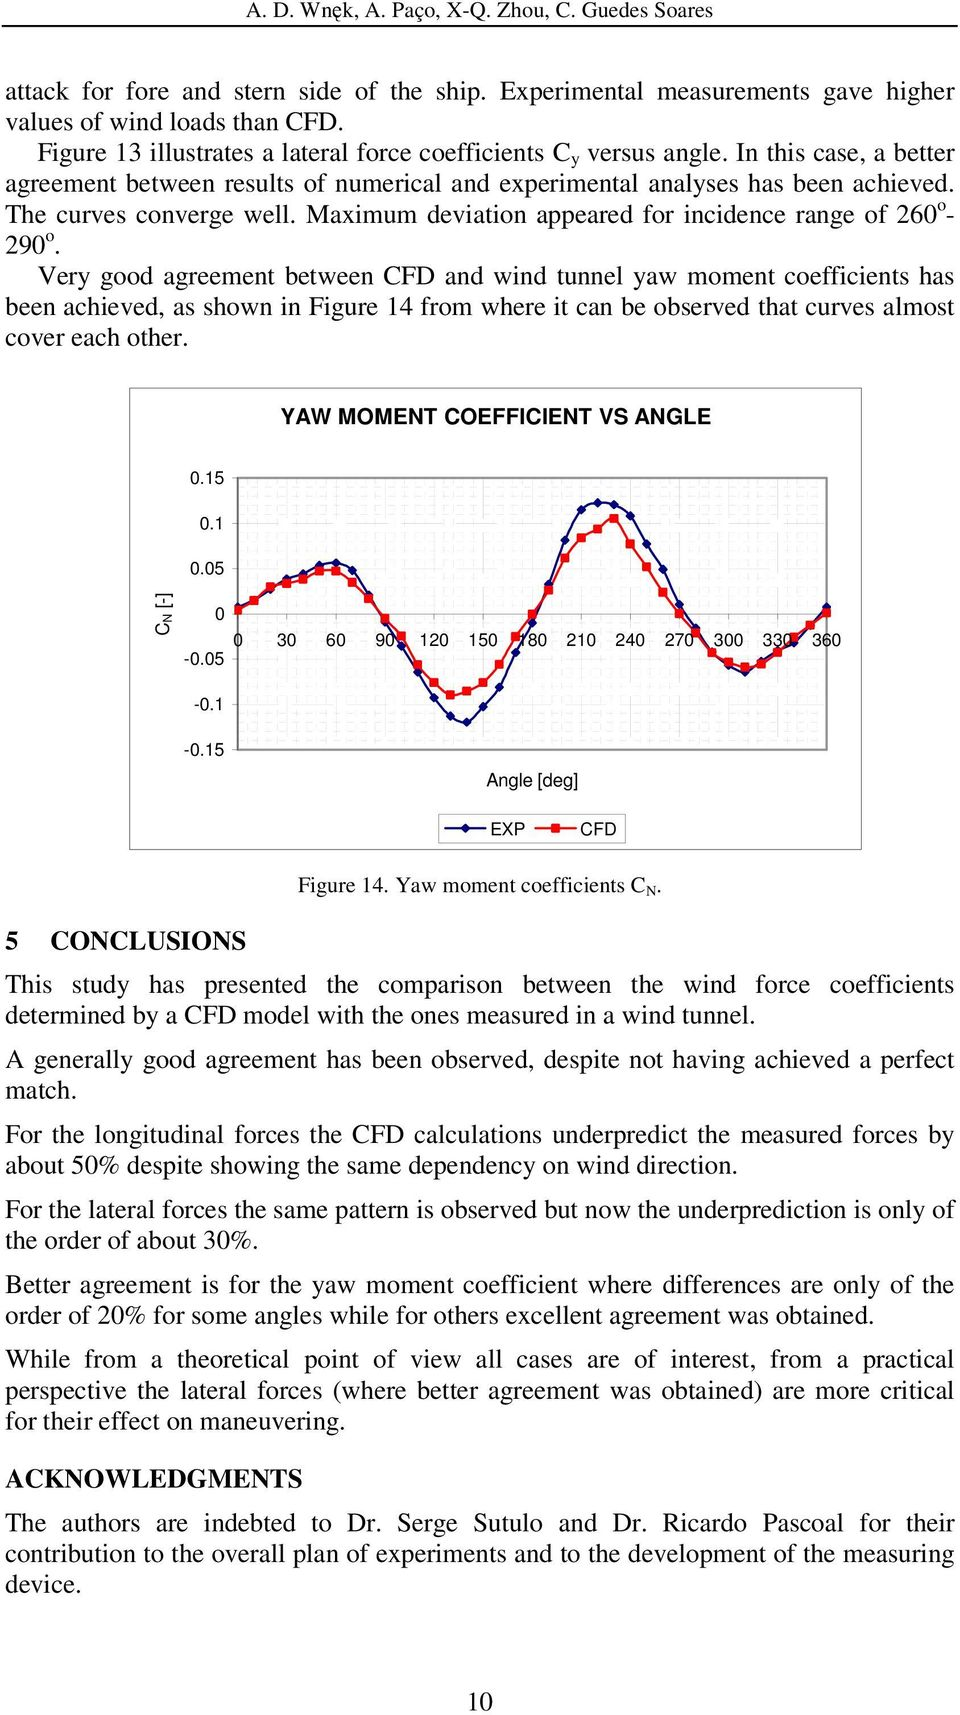 Very good agreement between CFD and wind tunnel yaw moment coefficients has been achieved, as shown in Figure 14 from where it can be observed that curves almost cover each other.